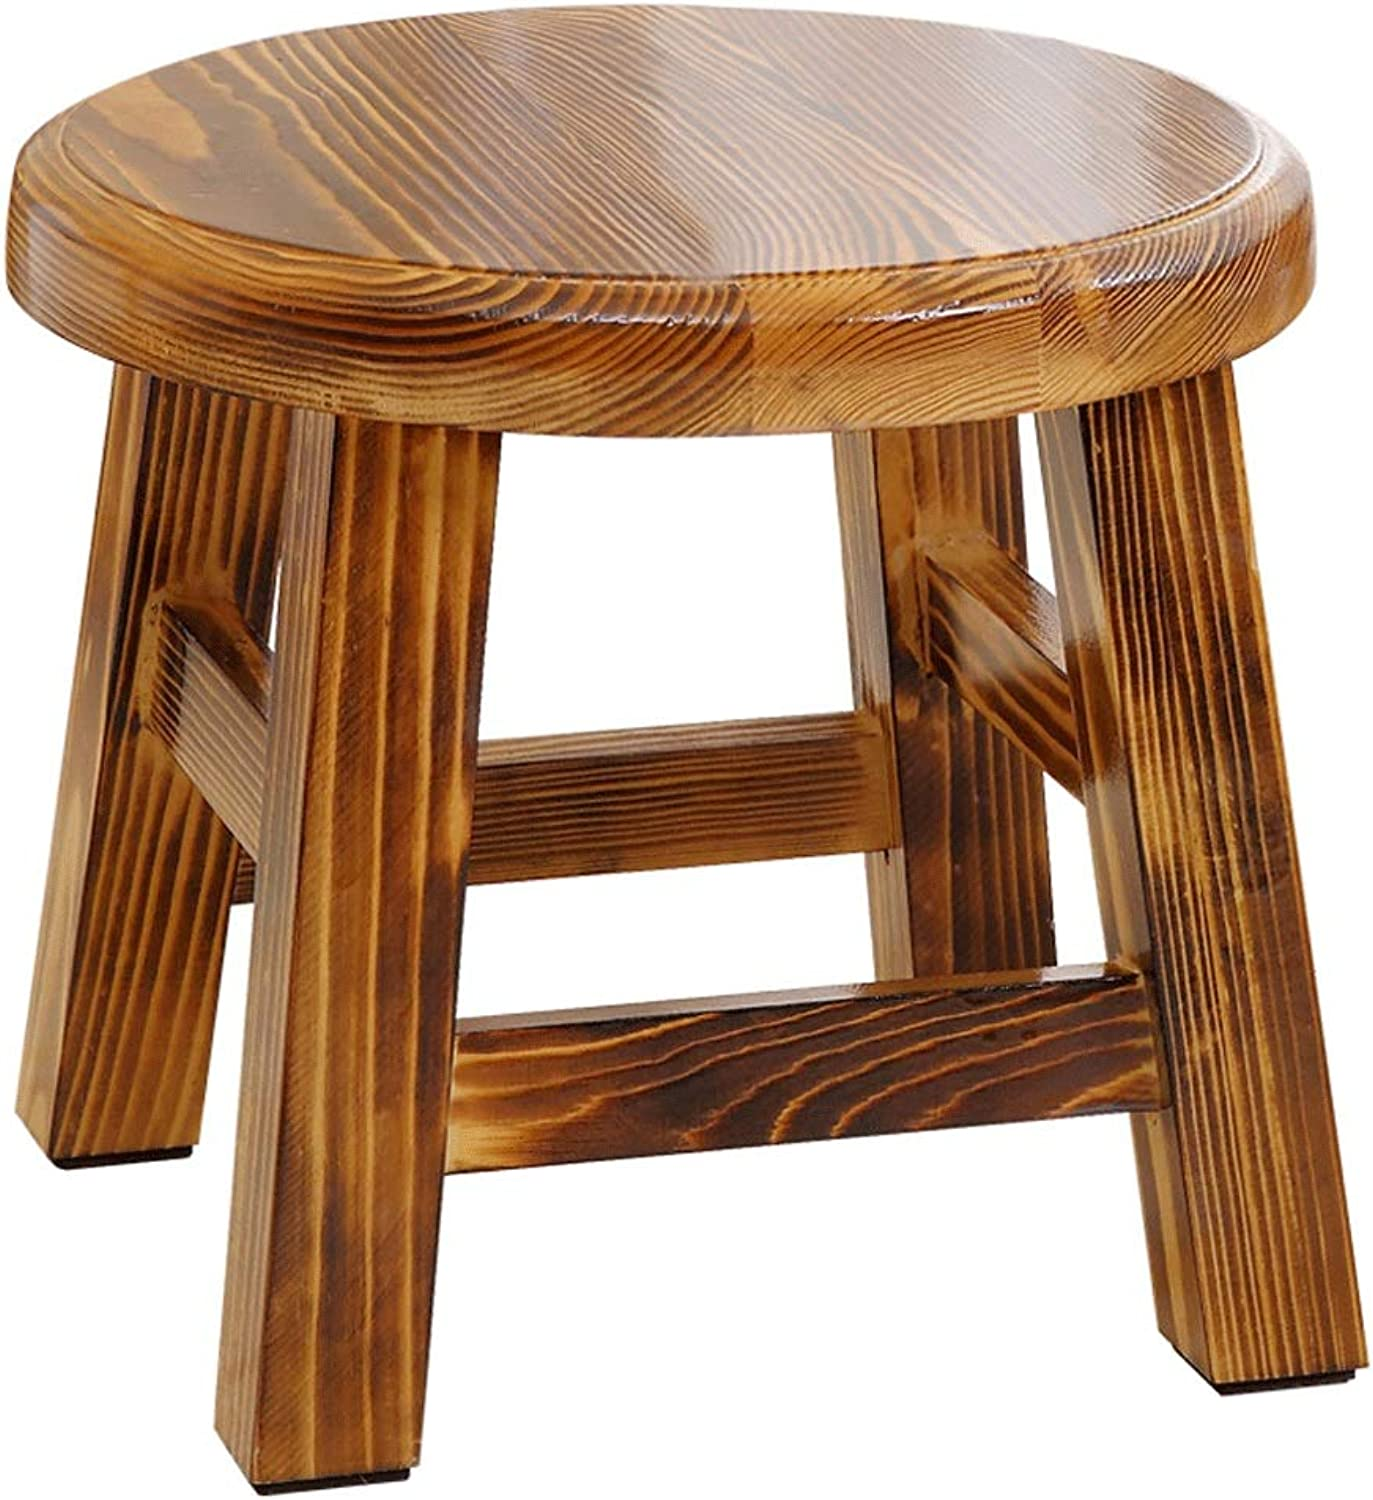 Solid Wood Stool Home Multiplex Can Small Stool Fashion Simple Pine Anti-Corrosion Durable Stool (color   A)